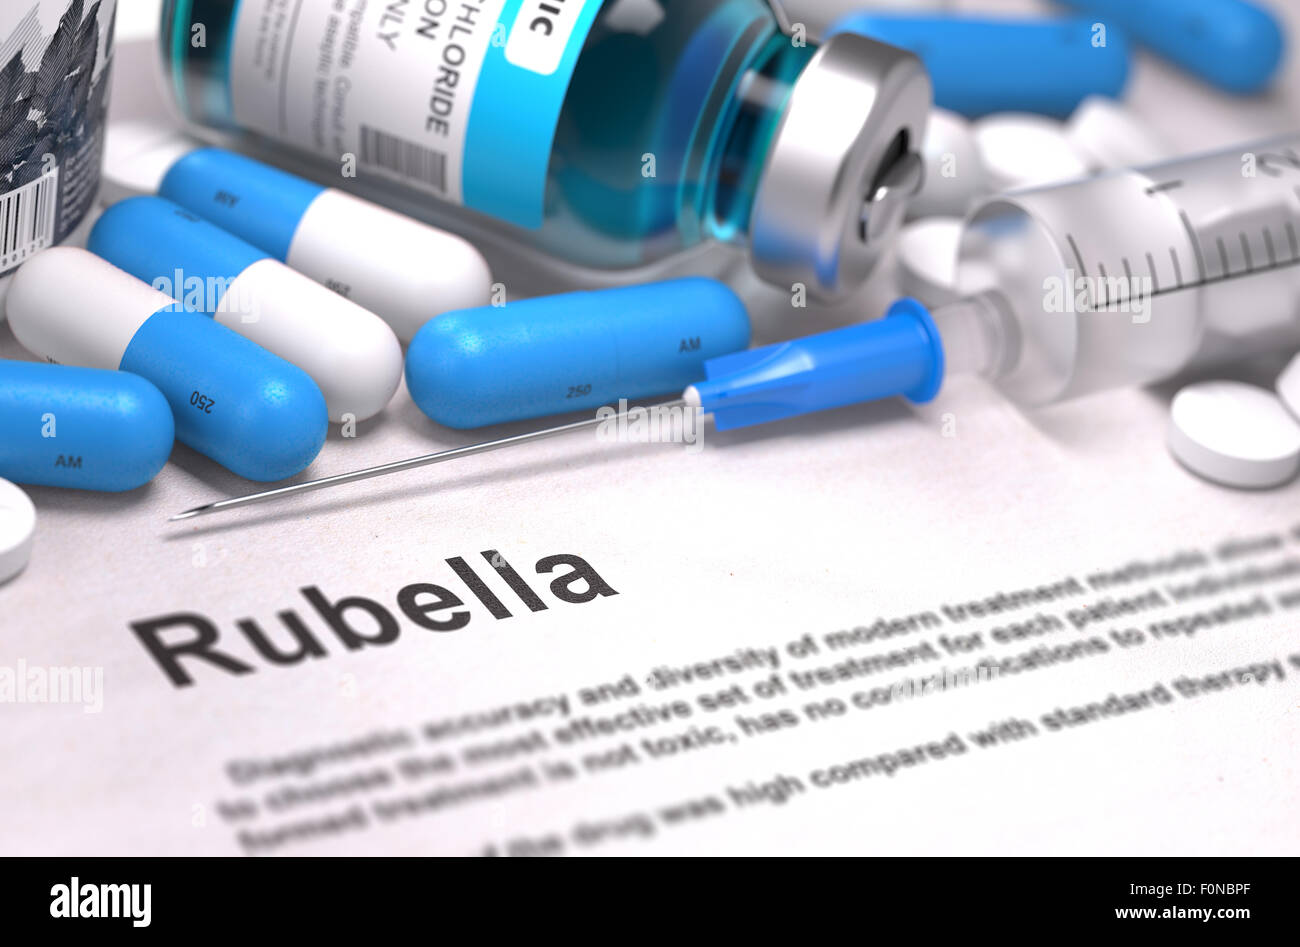 Diagnosis - Rubella. Medical Concept. 3D Render. Stock Photo